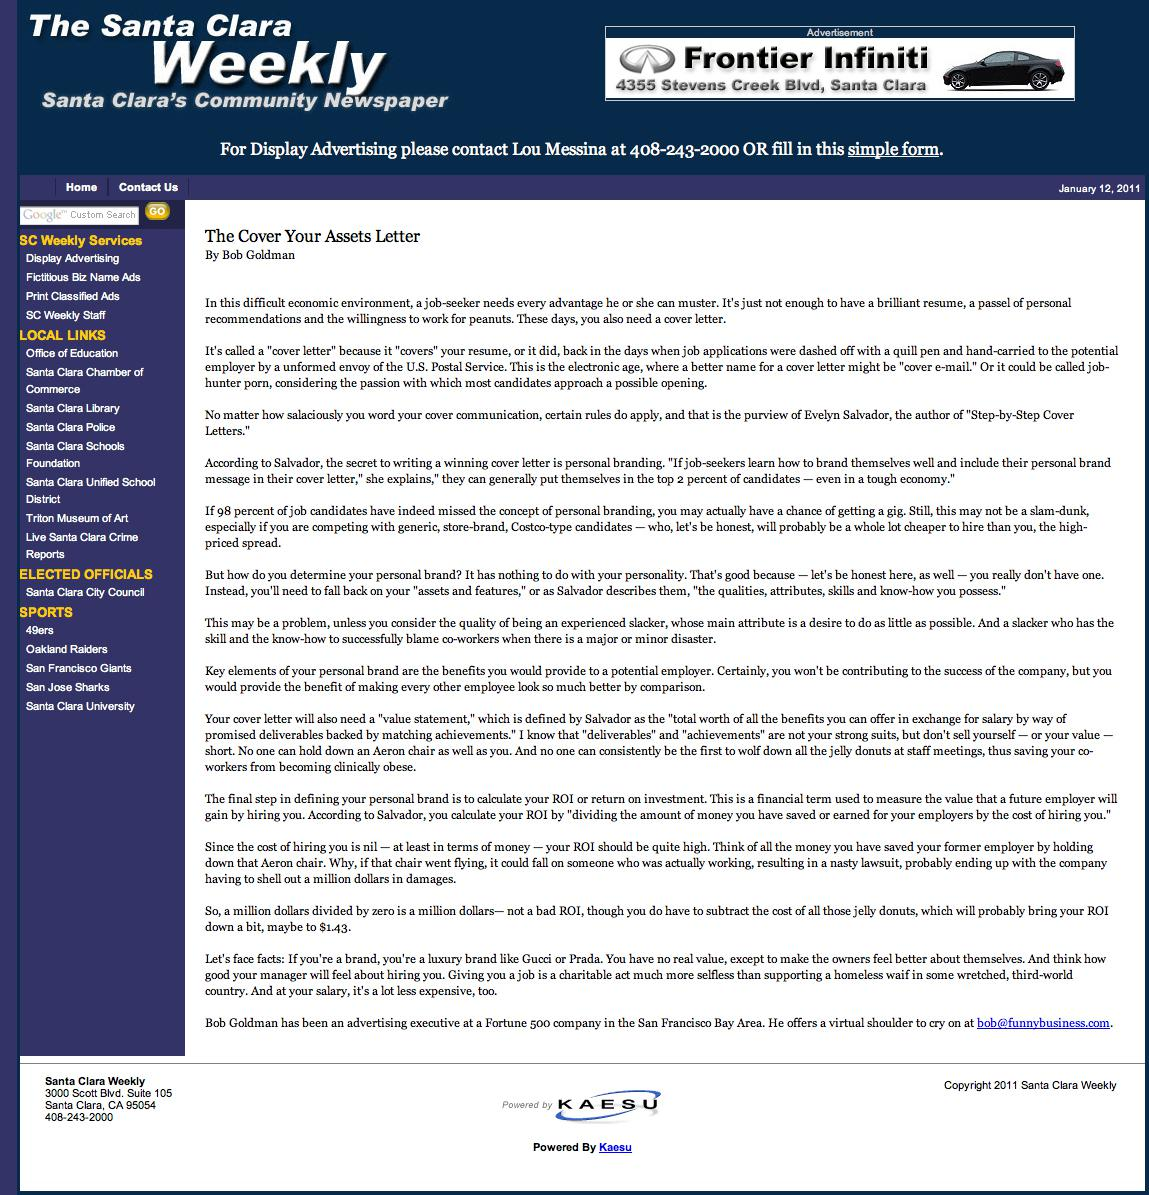 the santa clara weekly - the cover your assets letter.jpg